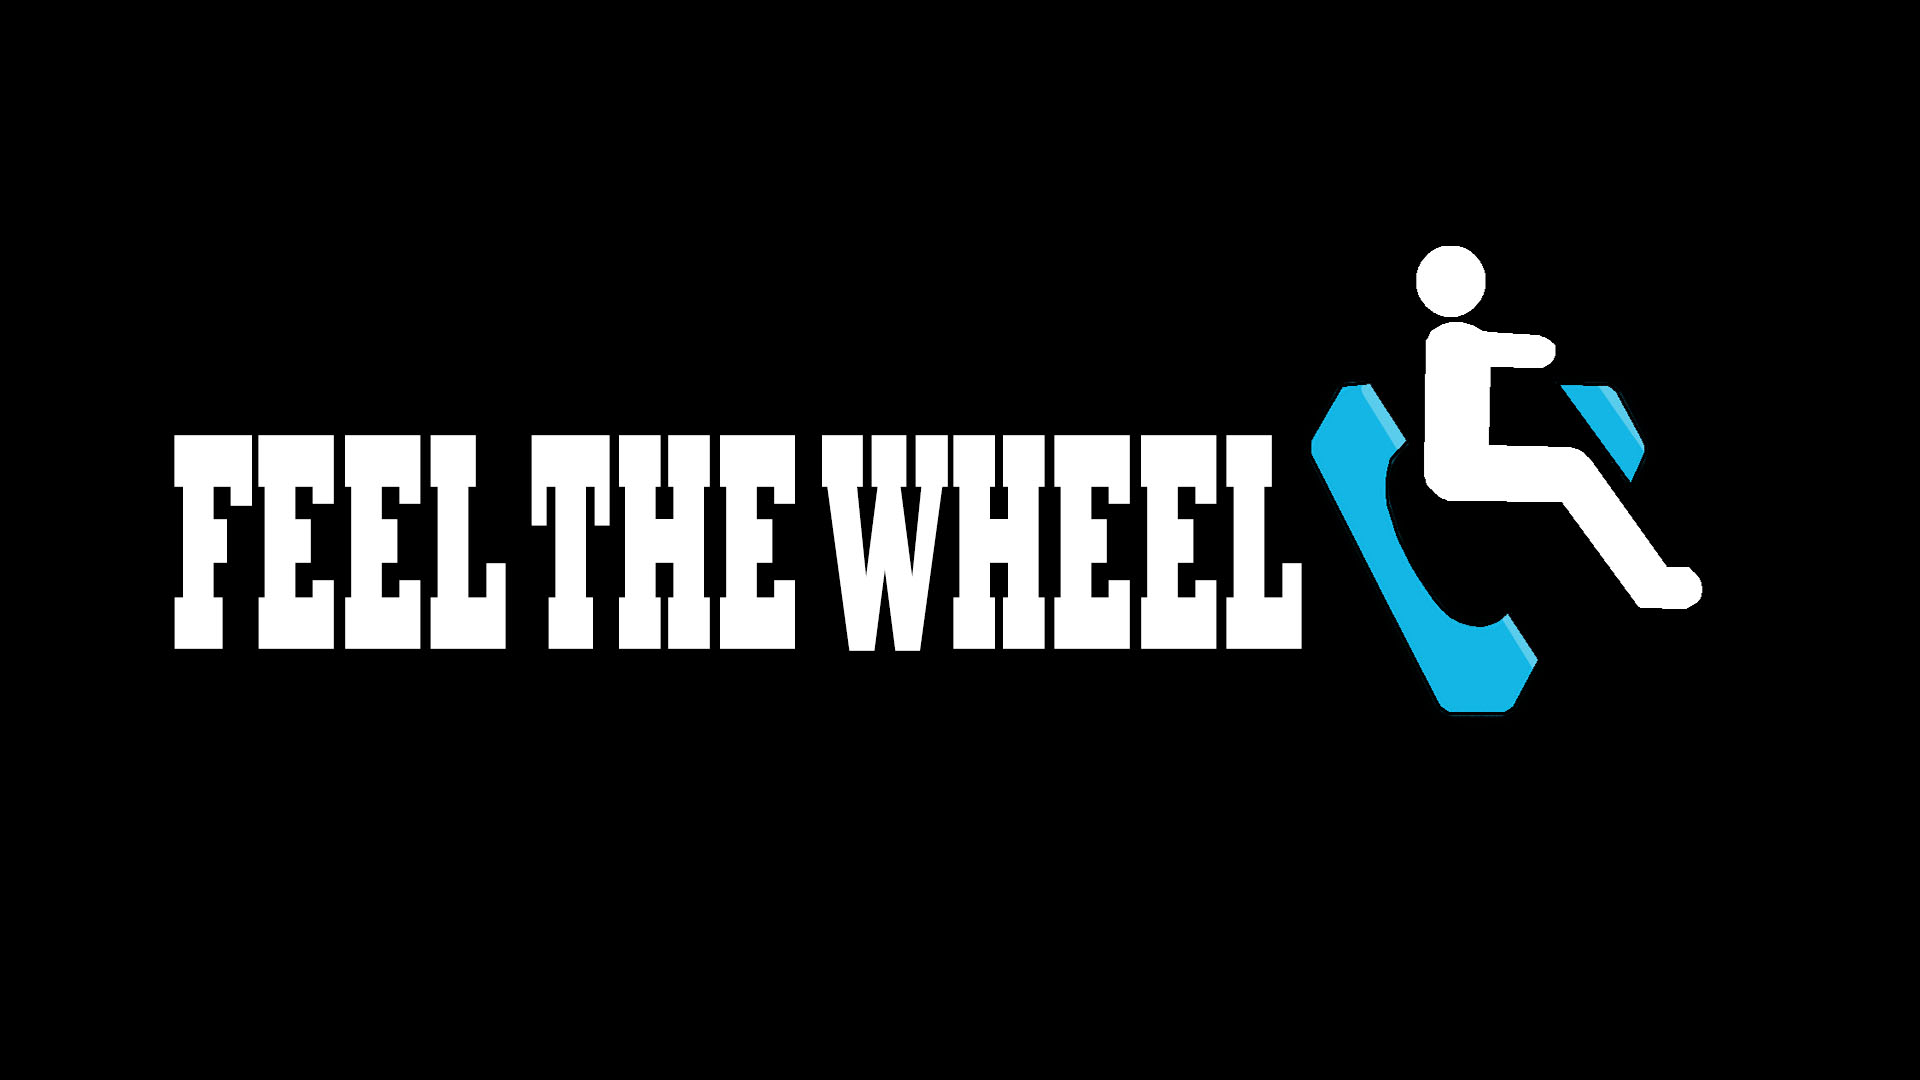 FEEL THE WHEEL